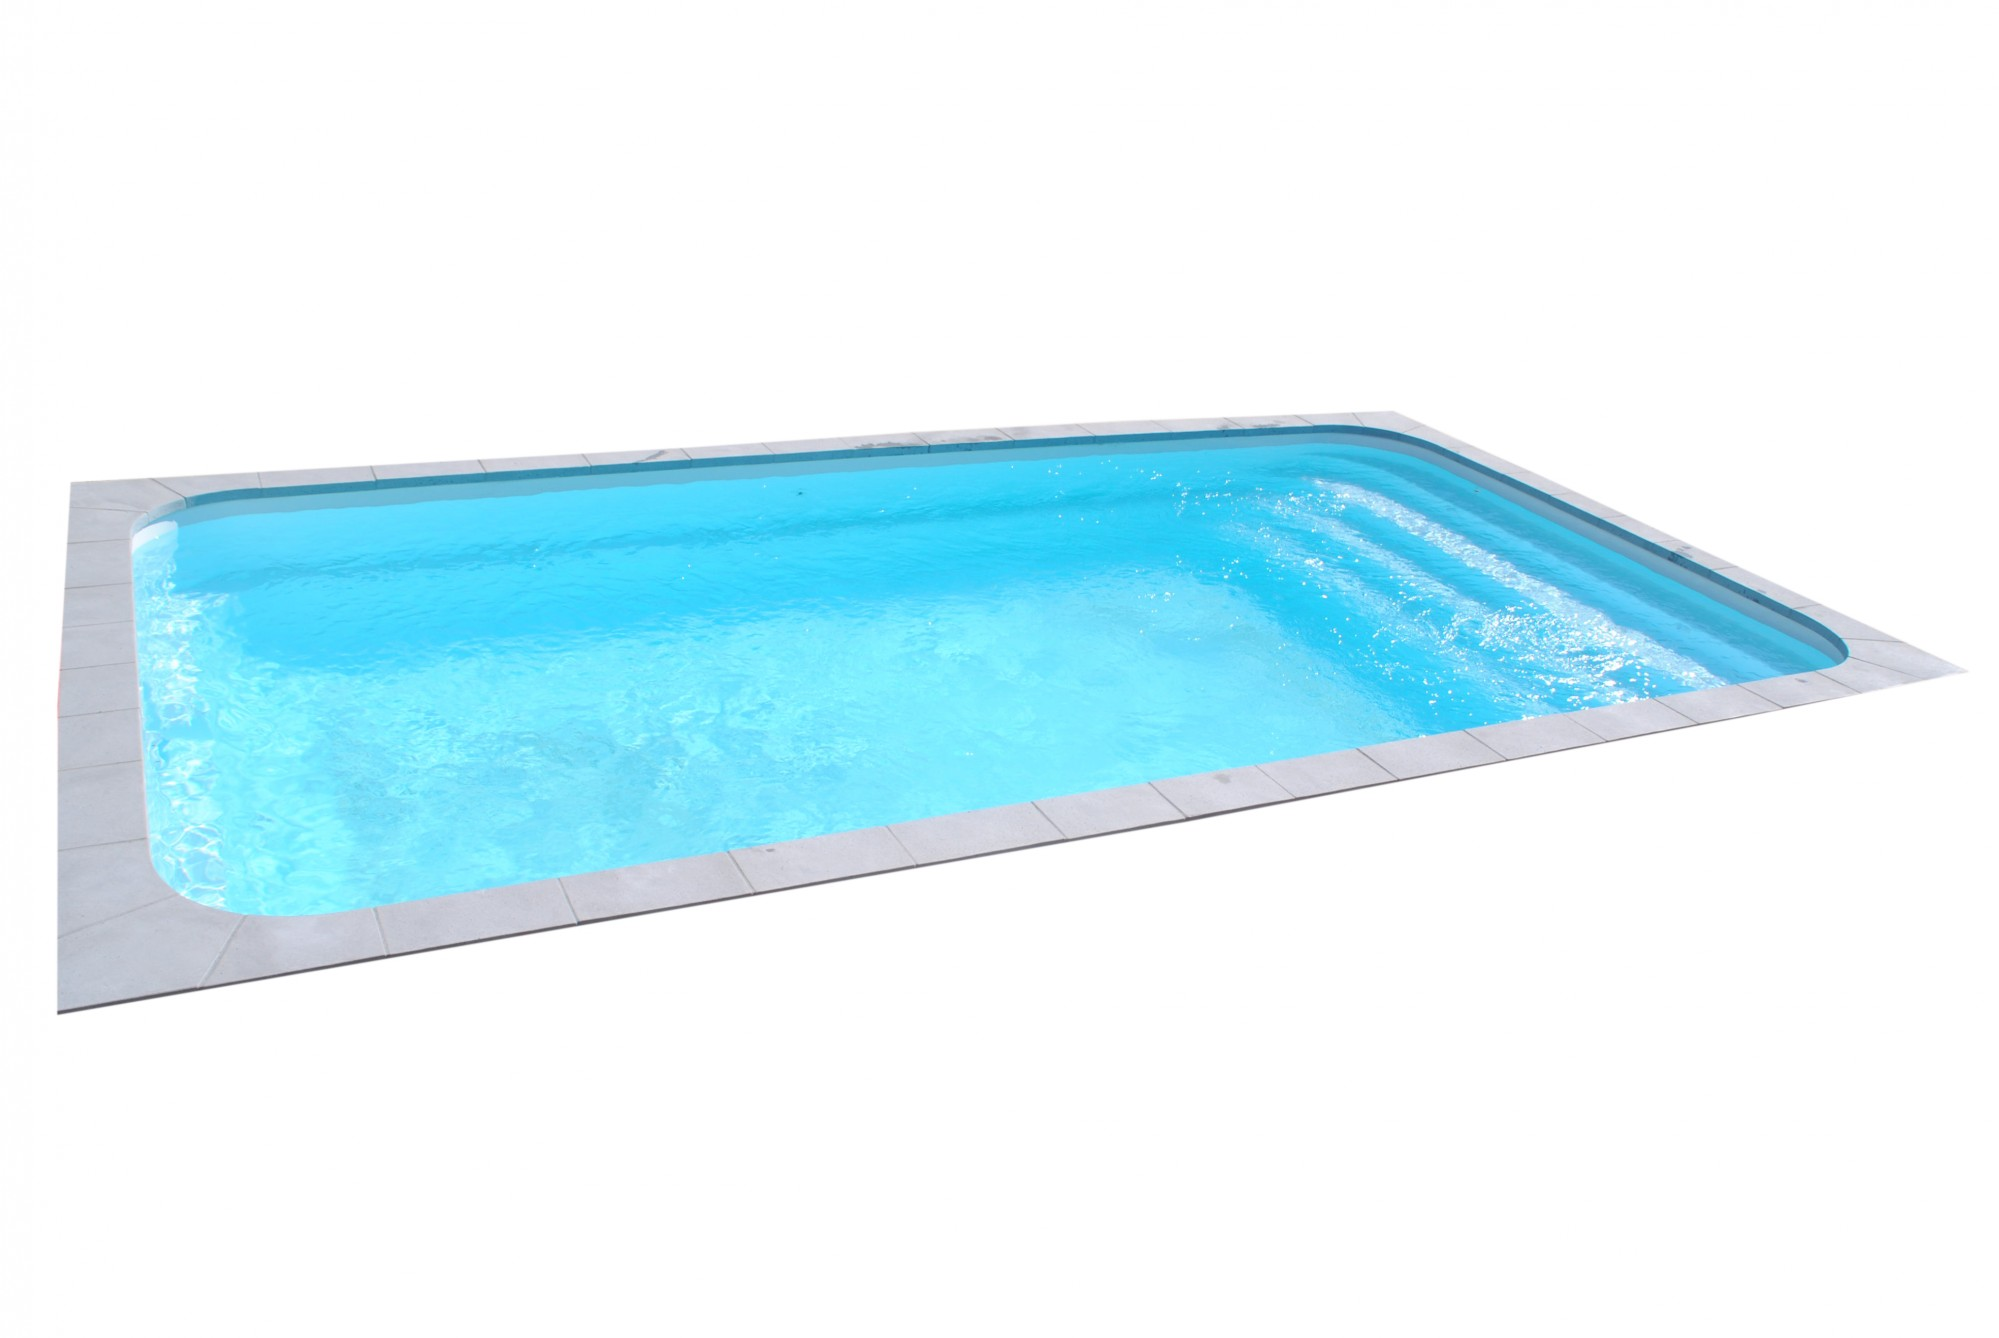 Prix d 39 une piscine coque polyester 8x4 pose comprise for Coque piscine polyester